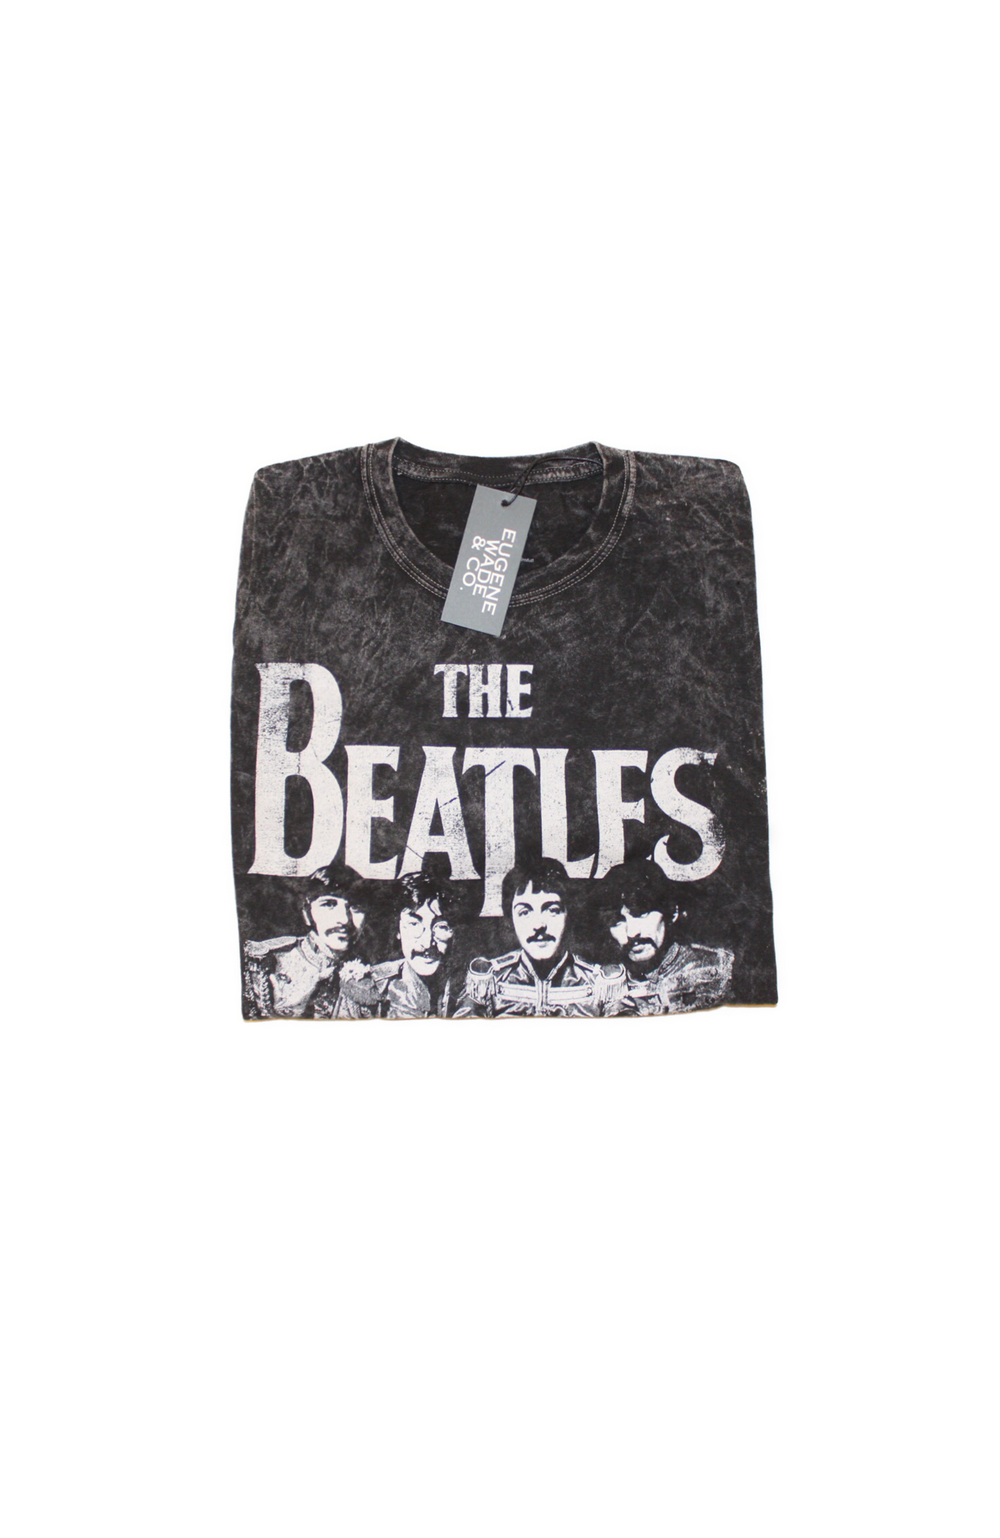 THE BEATLES (Faded)